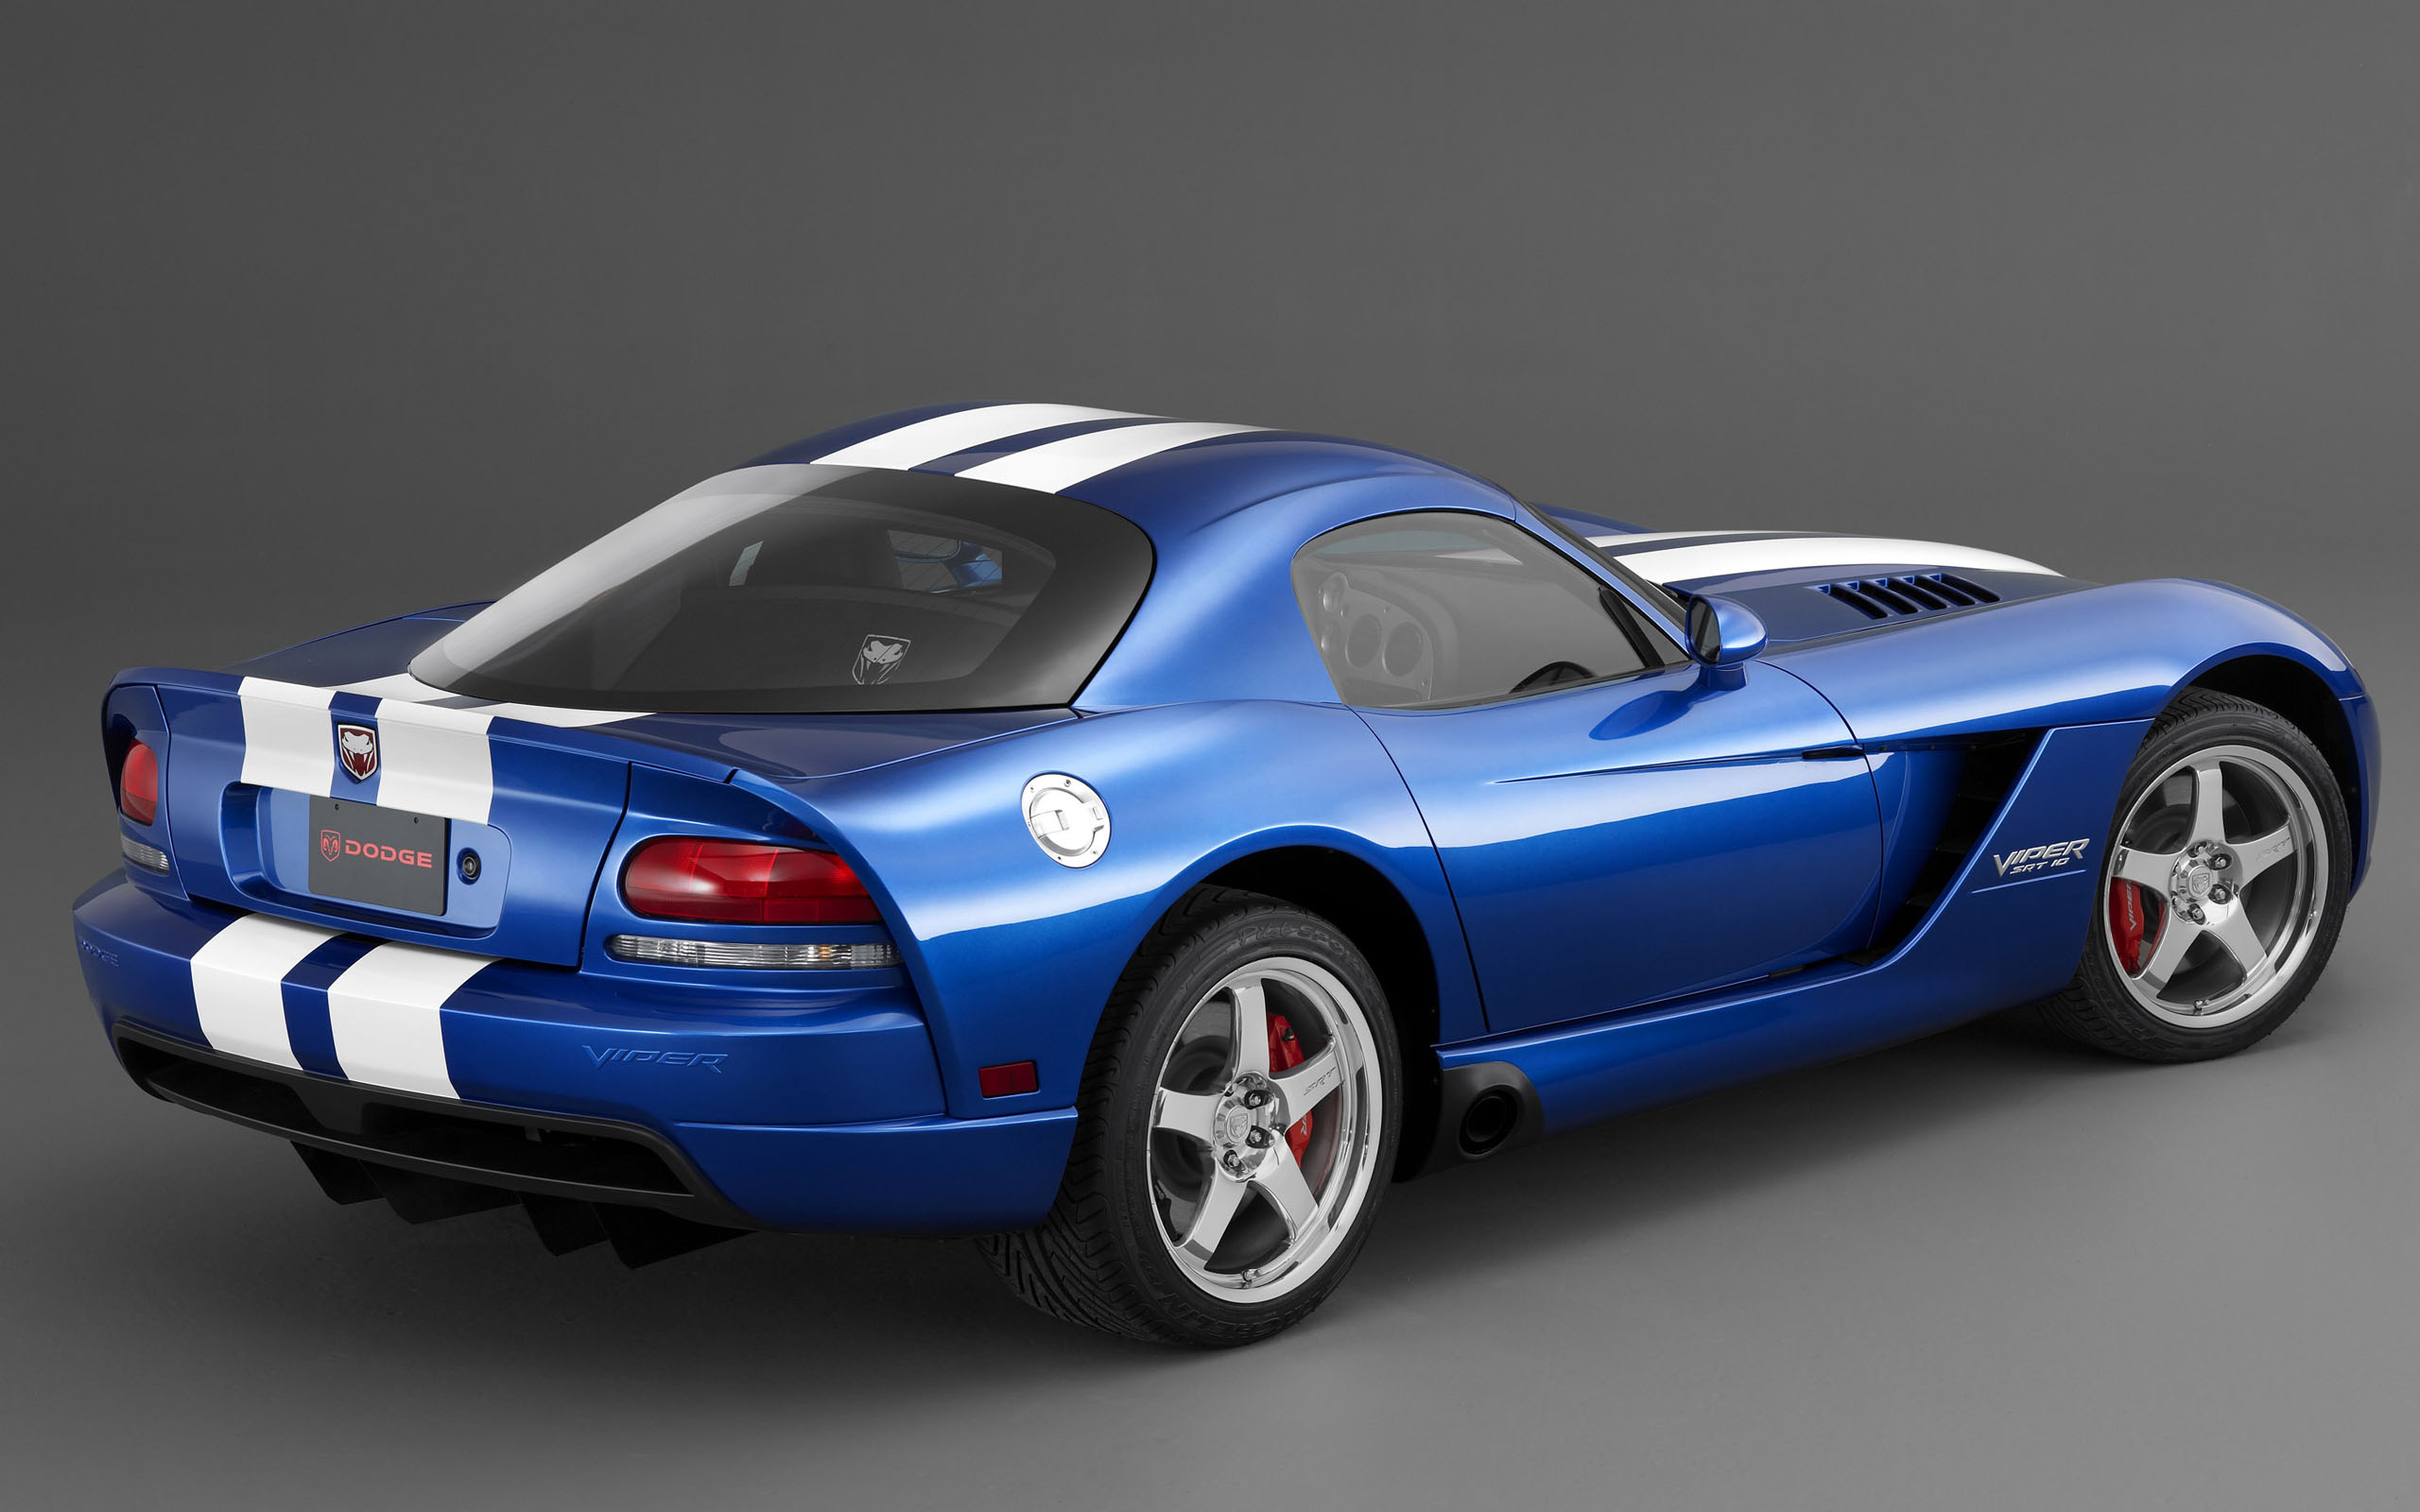 Viper SRT 10 wallpaper